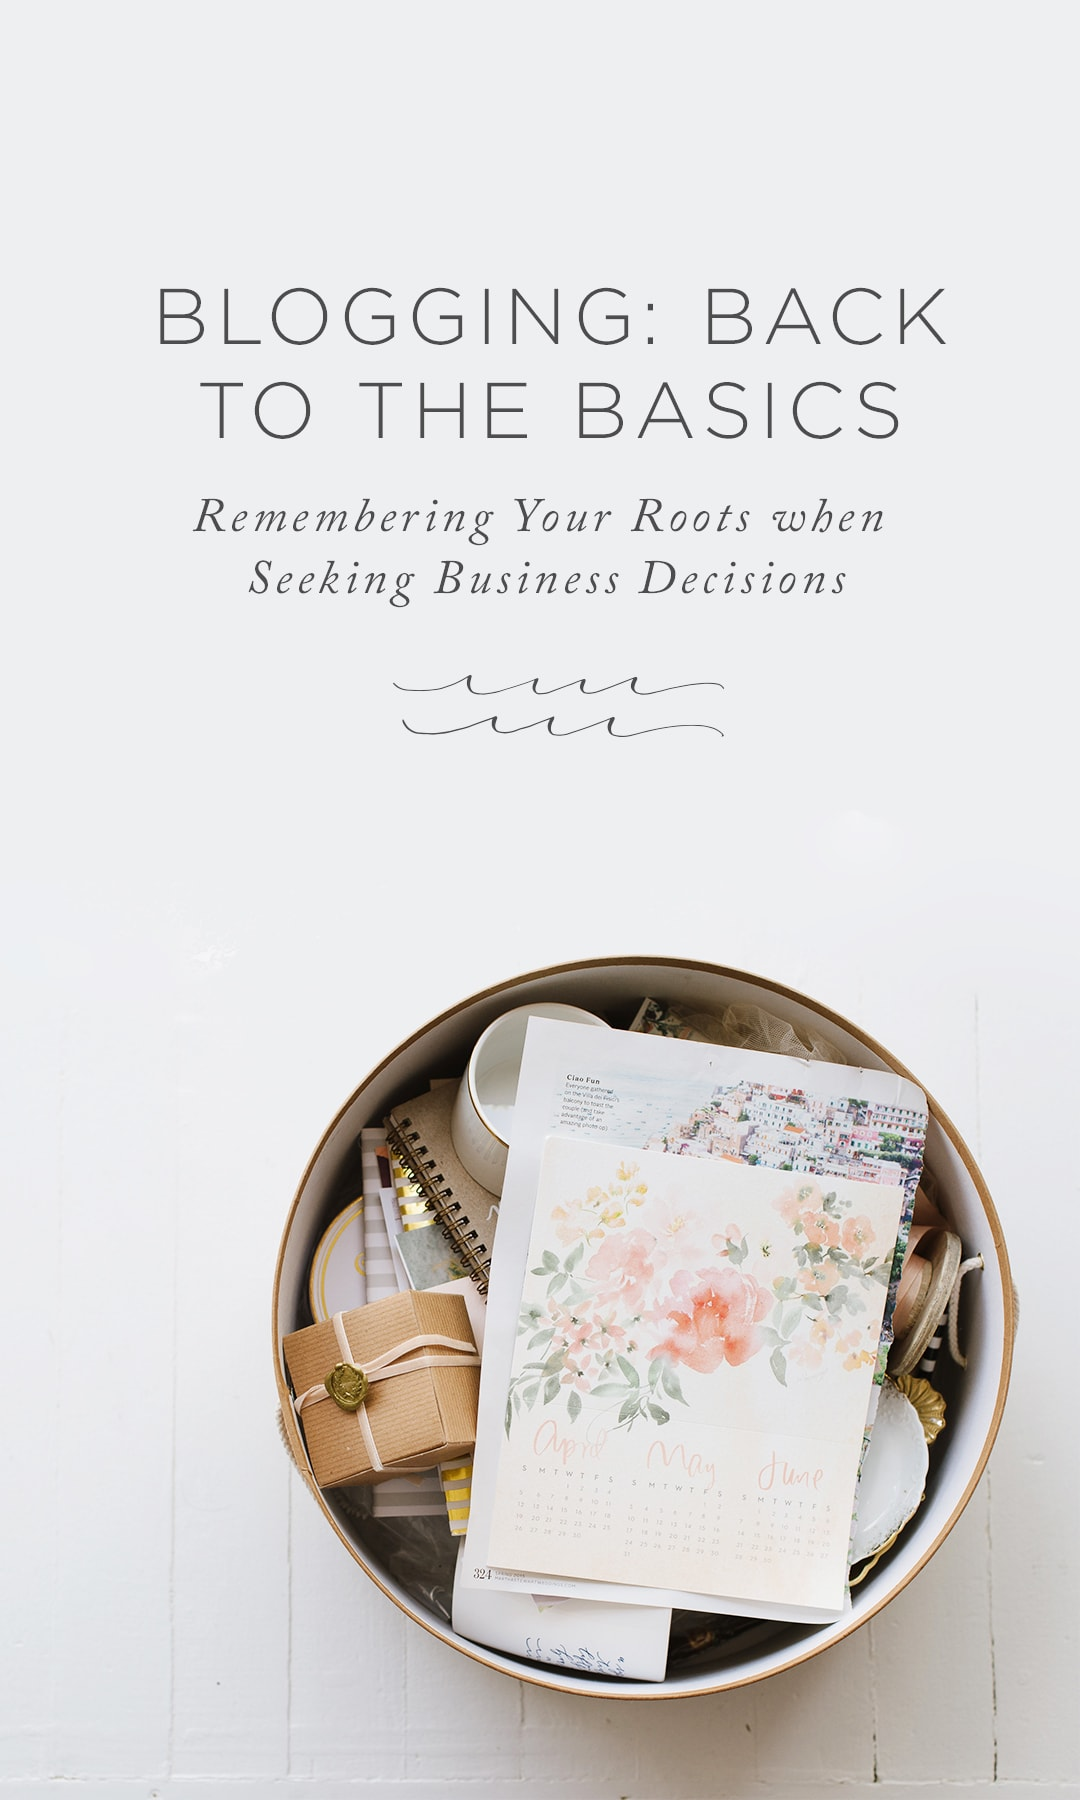 Back to the Basics: Remembering Your Roots (and your audience) when Seeking Business Decisions